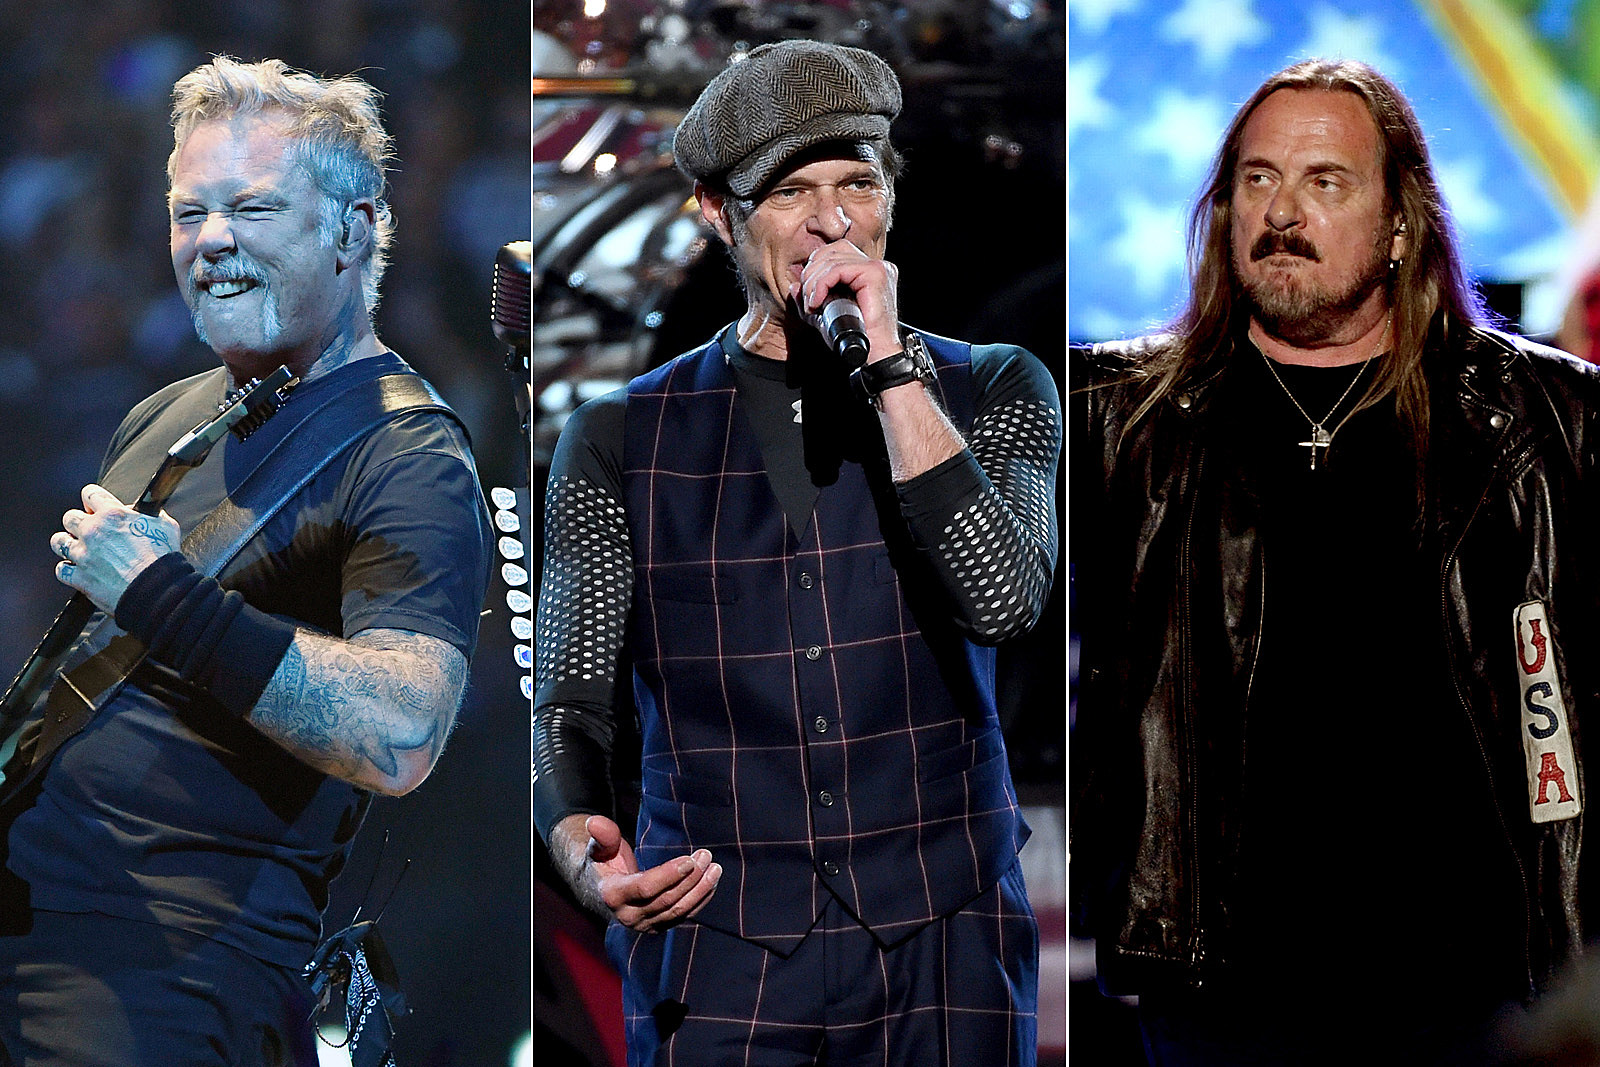 David Lee Roth, Skynyrd Join Metallica at Epicenter Festival